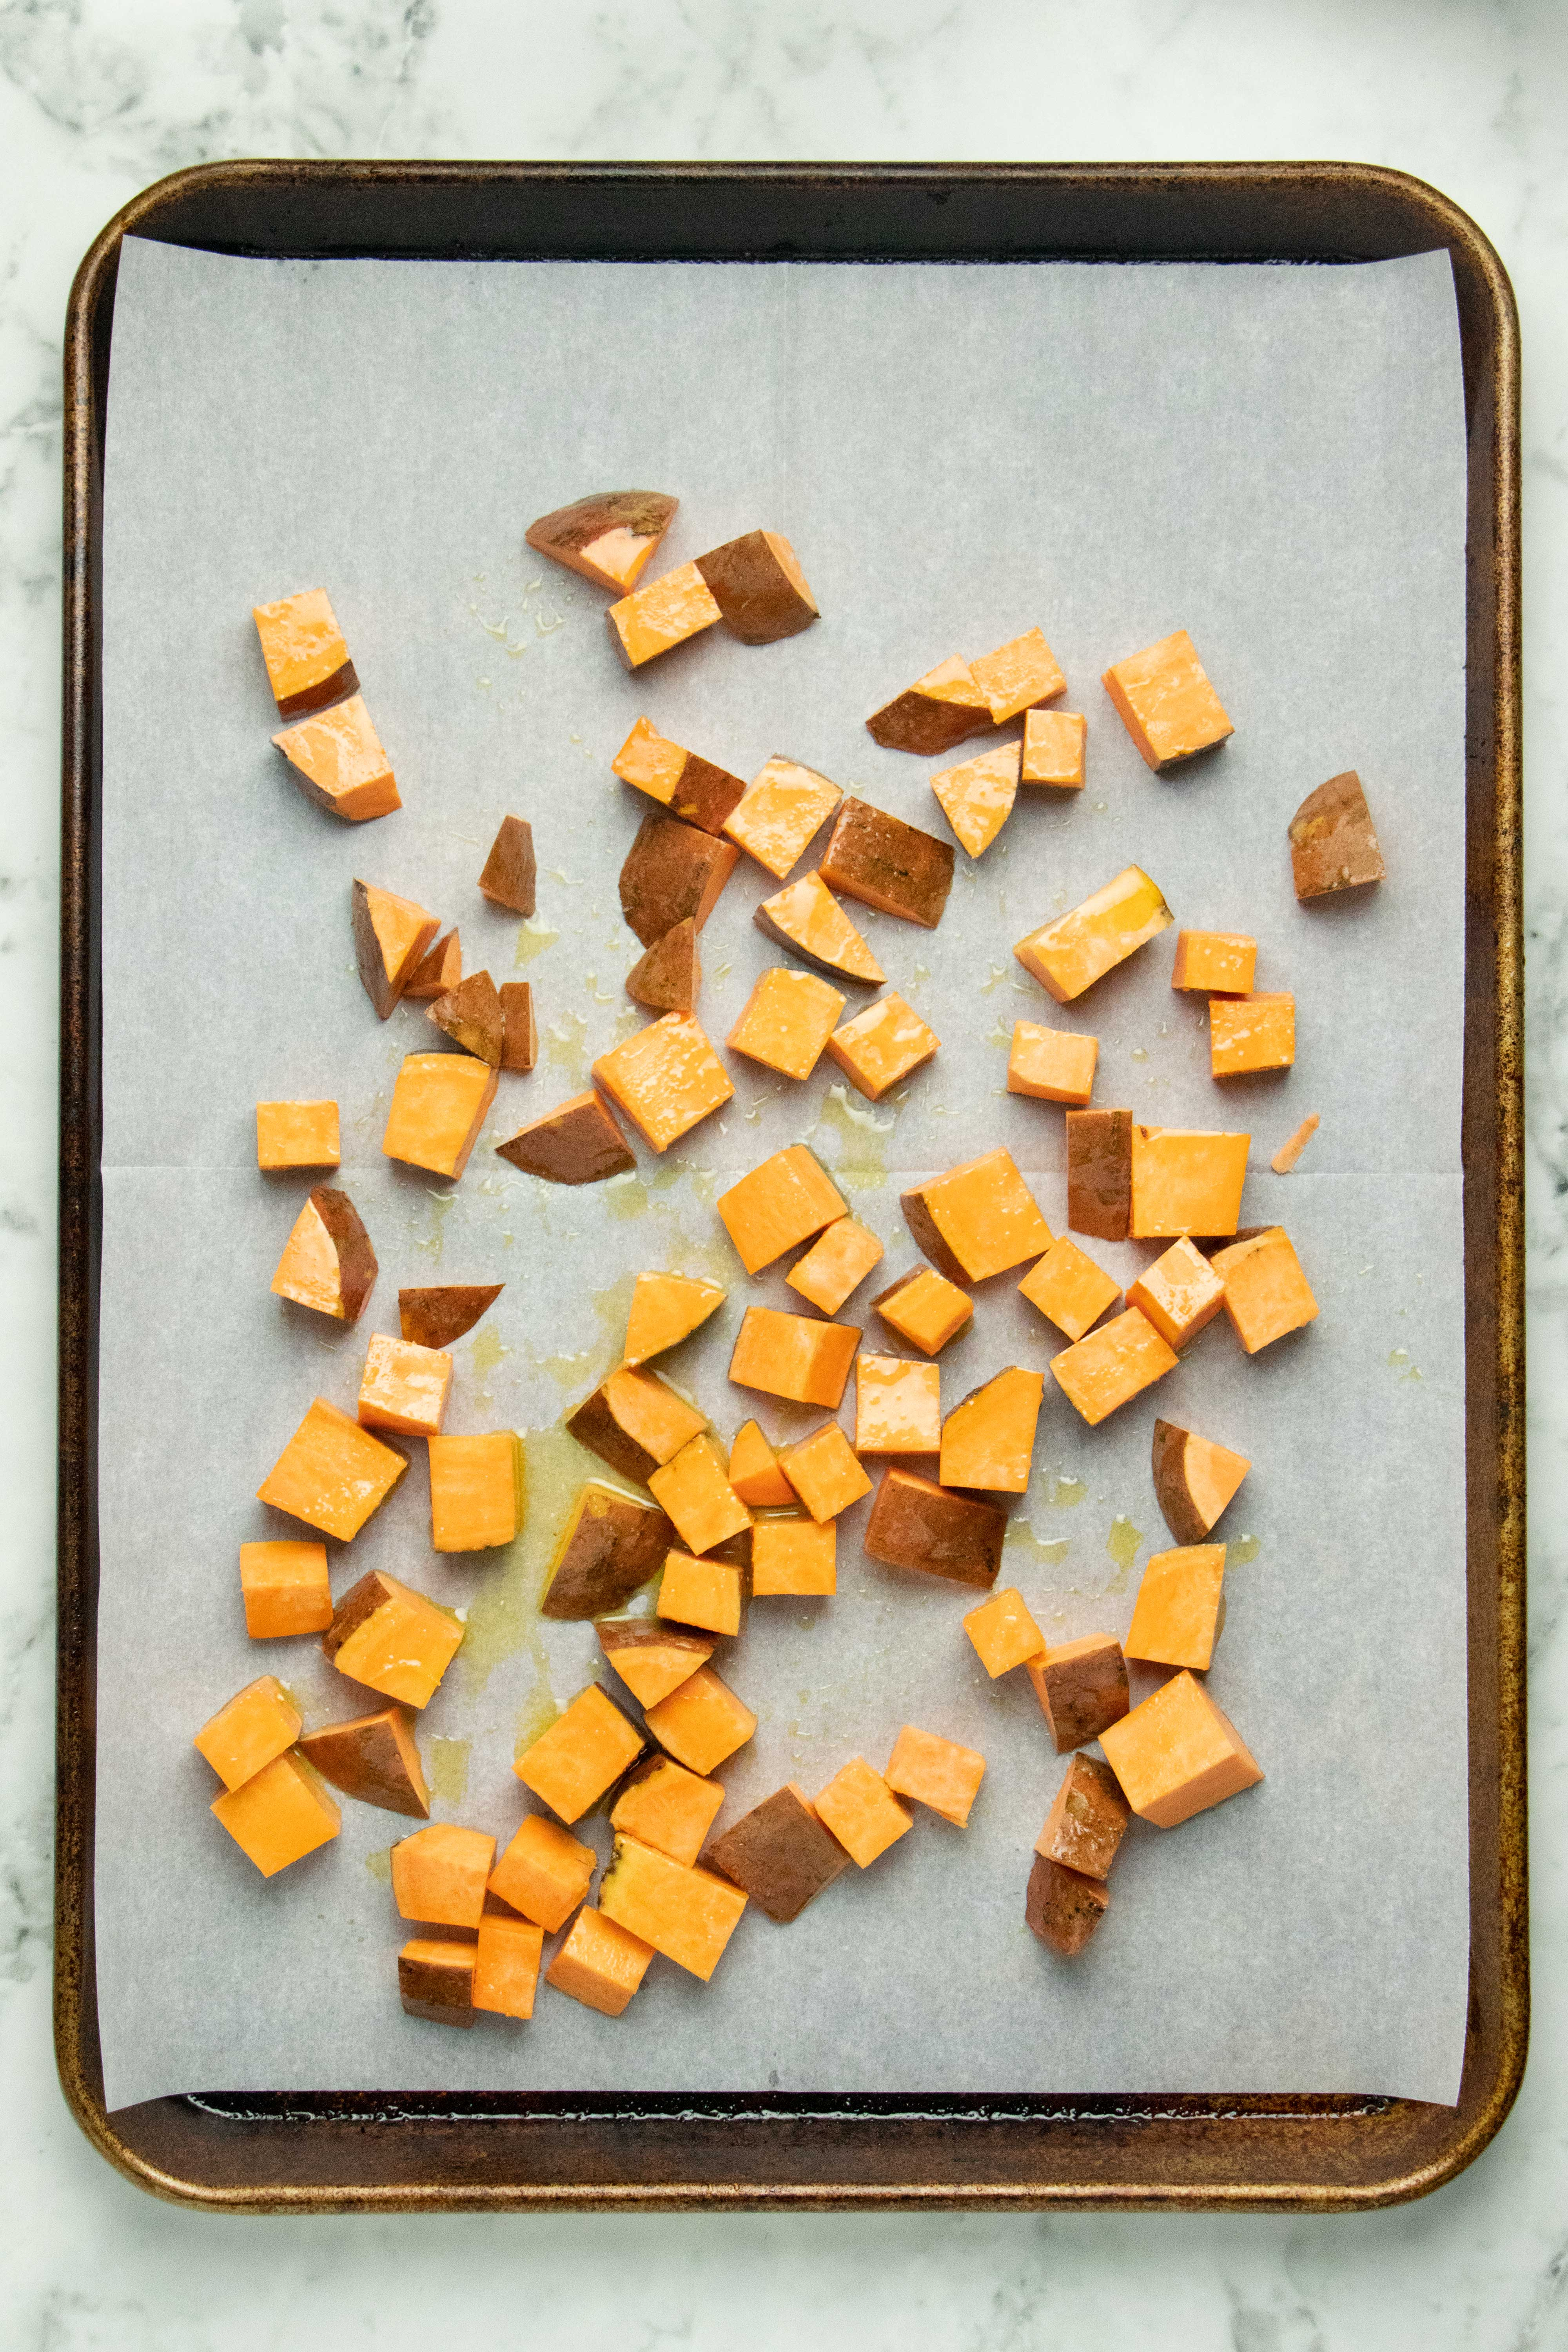 sweet potato chunks on a baking sheet, ready for the oven